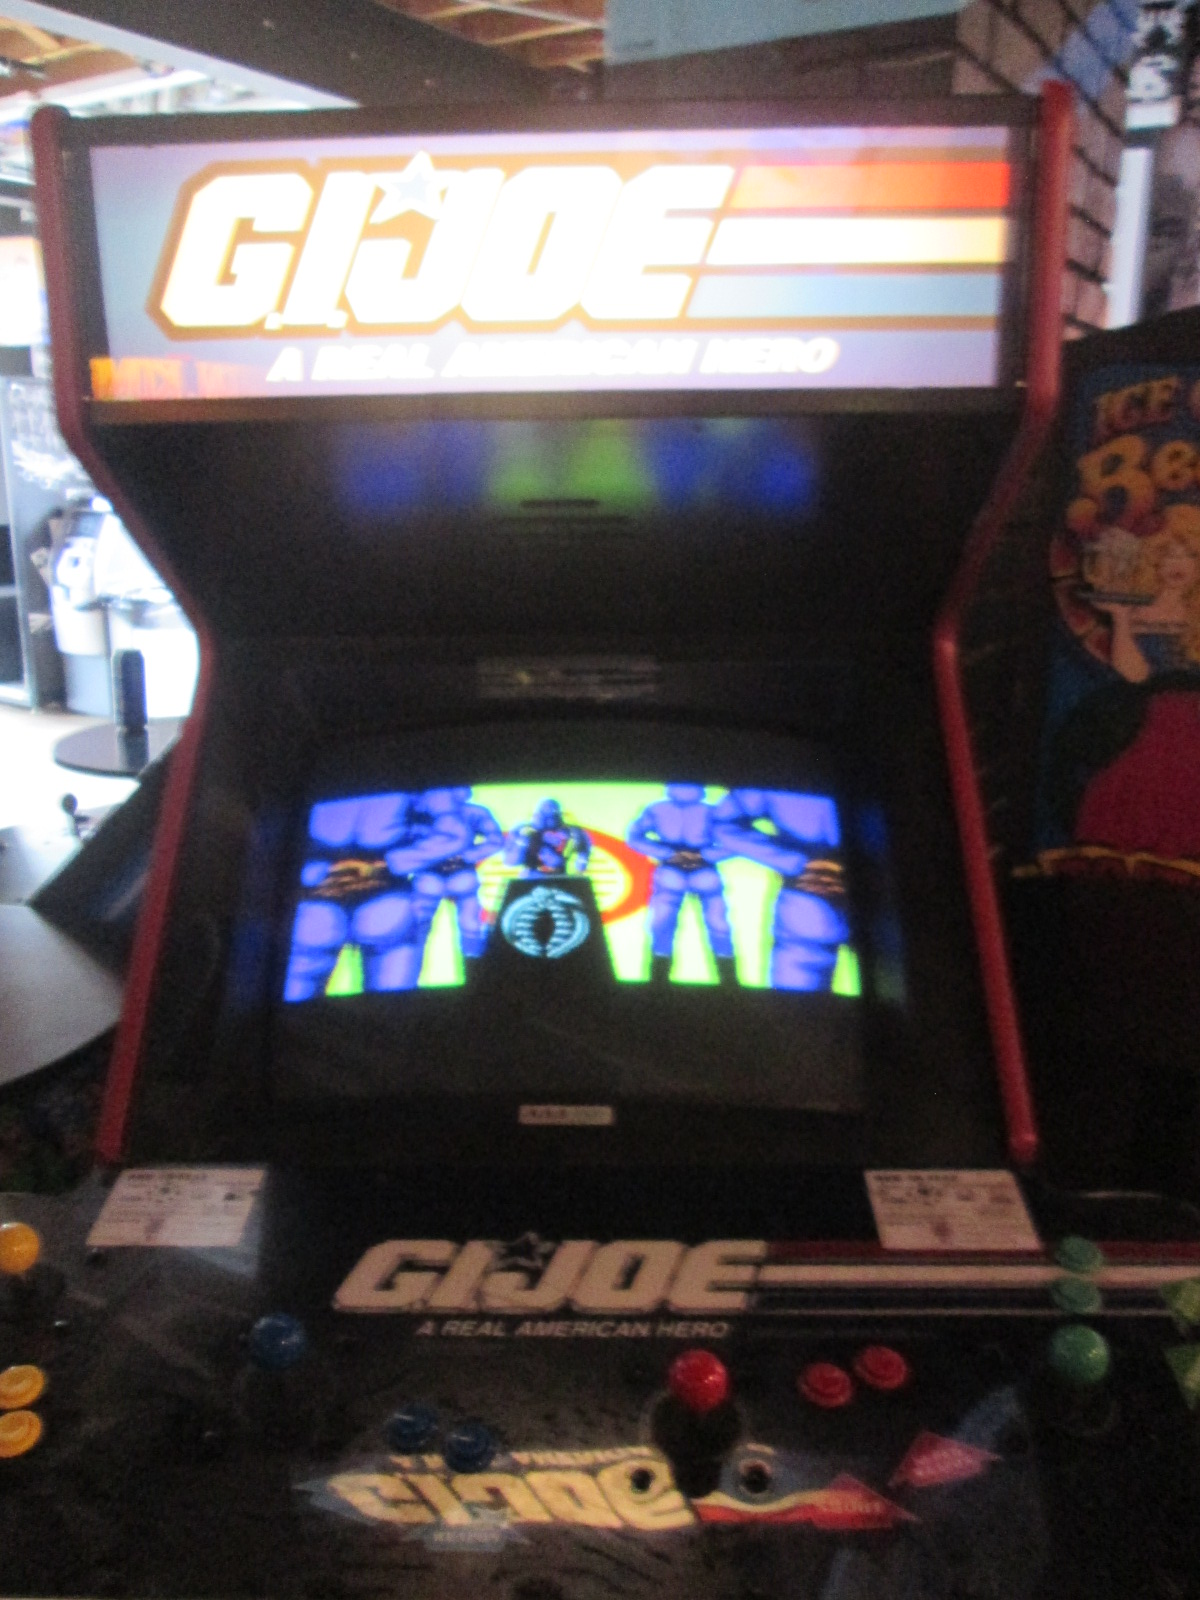 ed1475: G.I. Joe (Arcade) 185 points on 2016-09-04 15:46:54